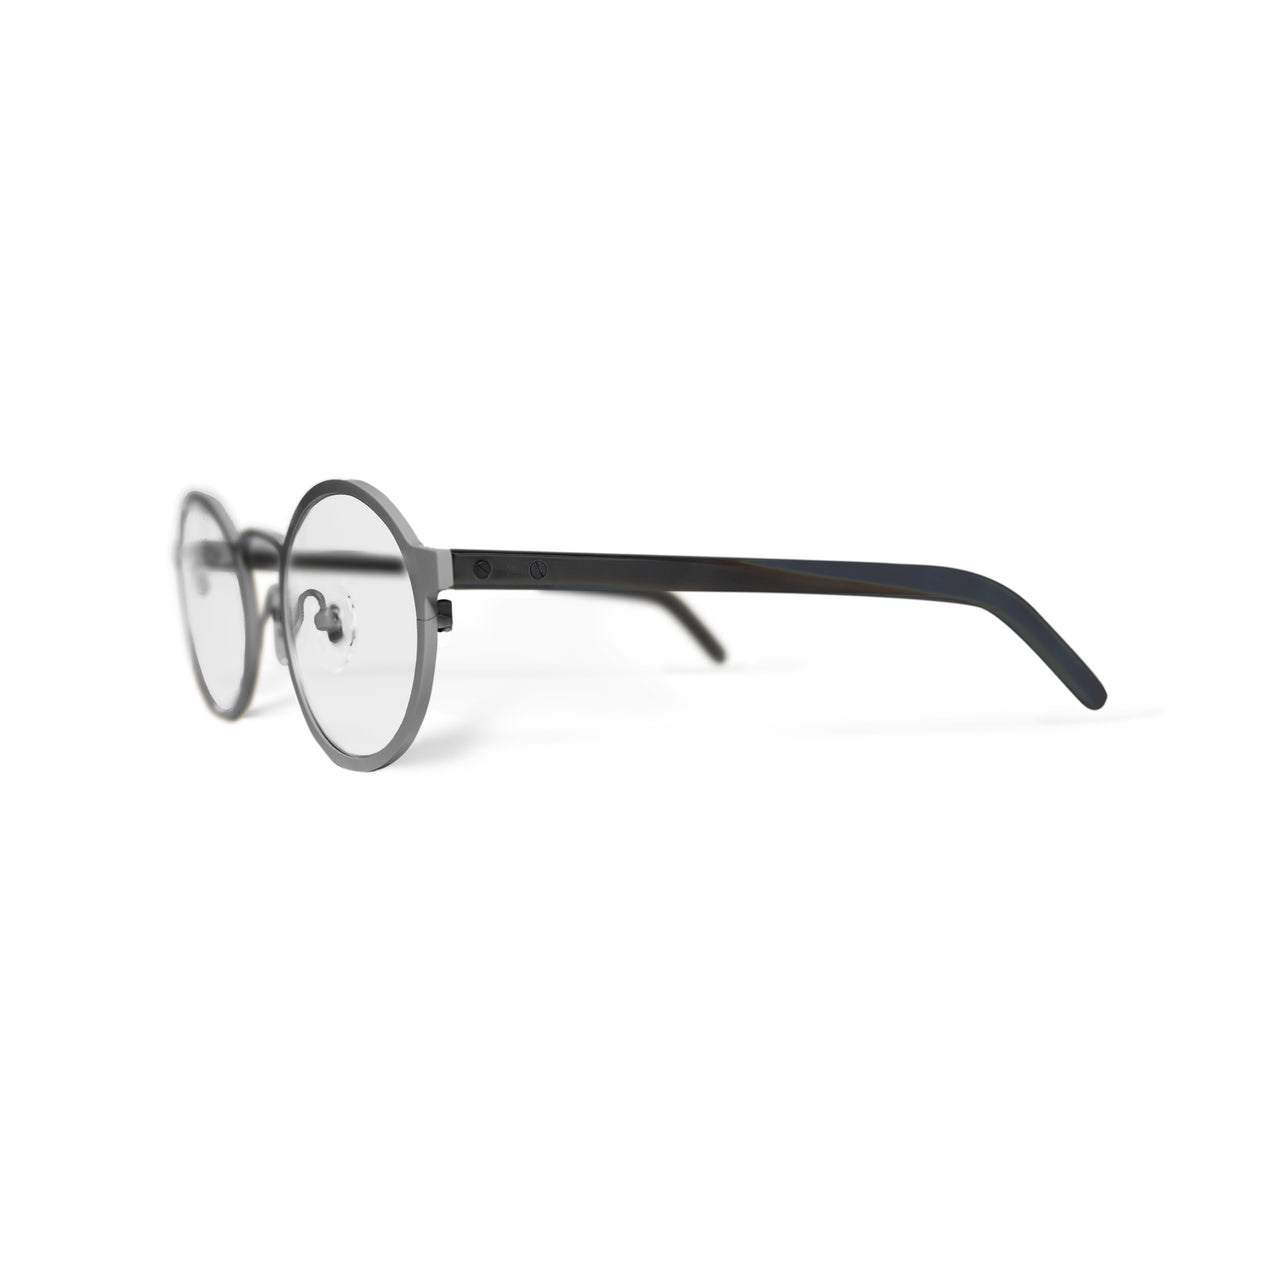 Metal / Horn. Brushed Silver / Dark. Clear Lens. - BLYSZAK eyewear eyewear - eyewear, optical, sunglasses